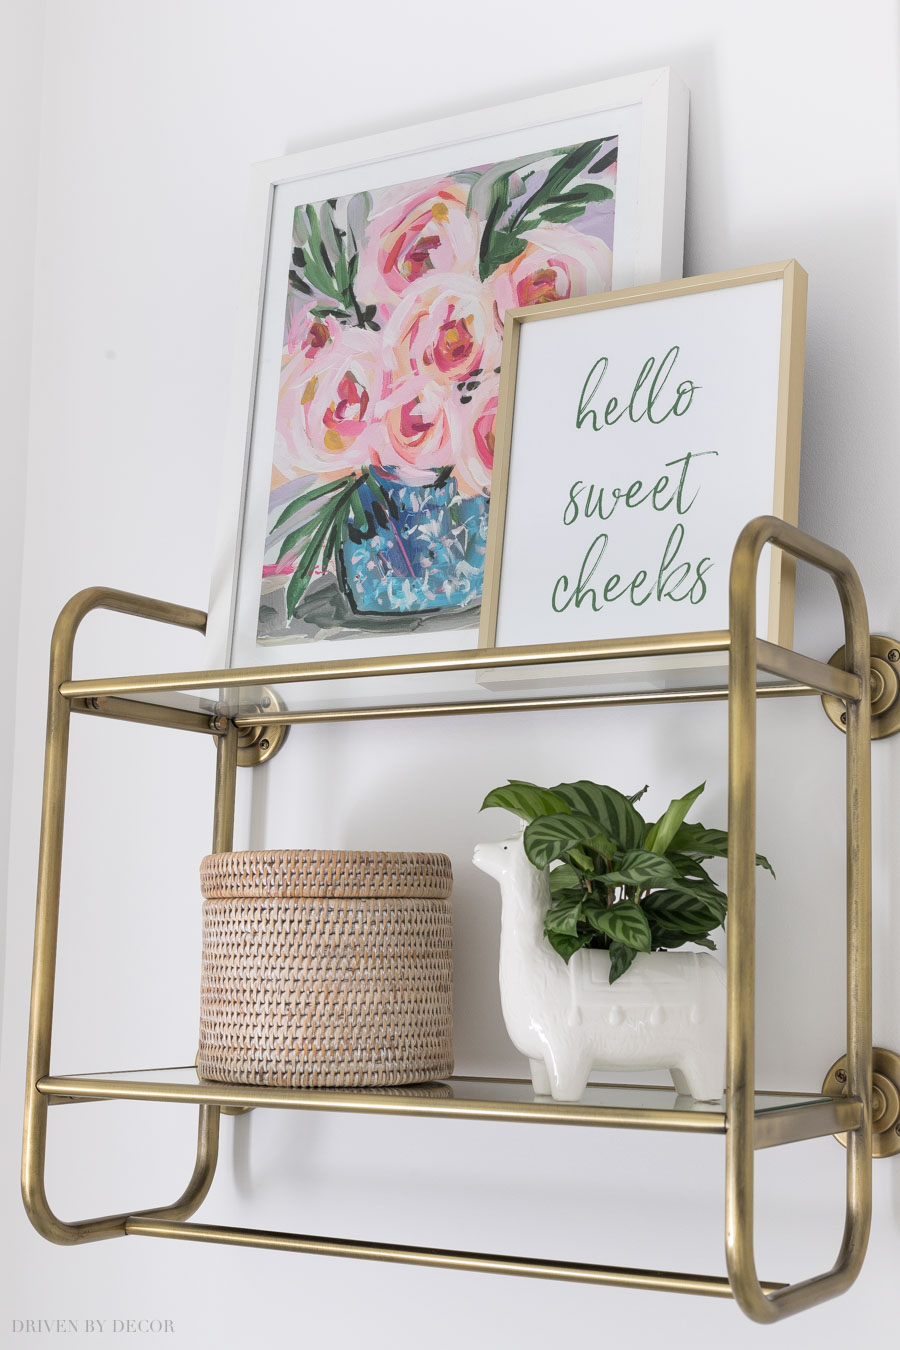 Love this brass wall shelf over the toilet